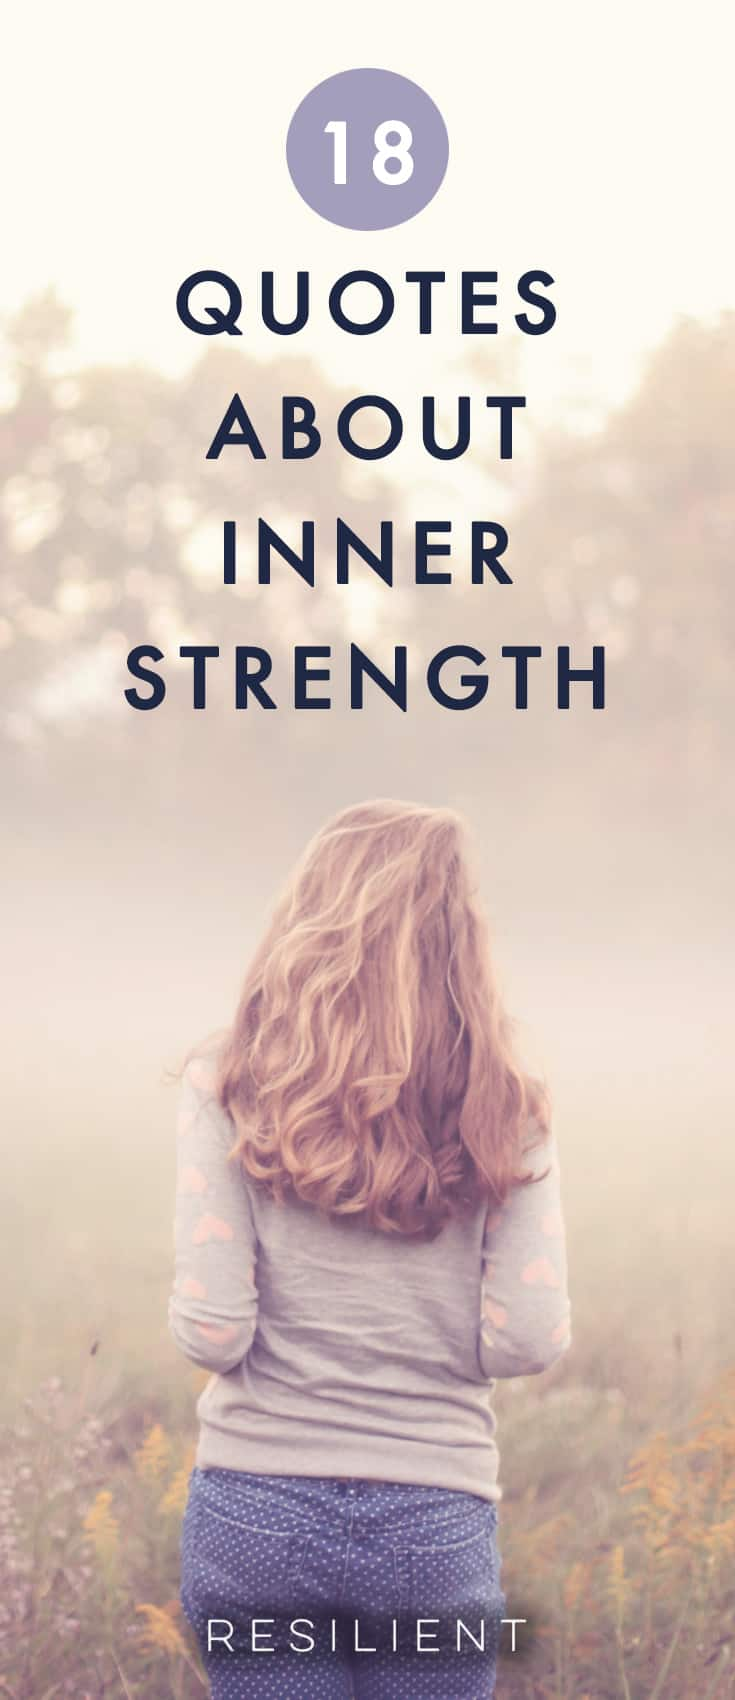 When you need a little encouragement, you can draw on your reserve of inner strength and hope. No matter how dark it gets, you always have a little wellspring of strength inside you, even if it doesn't feel like it. 😃 Here are 18 quotes about inner strength.